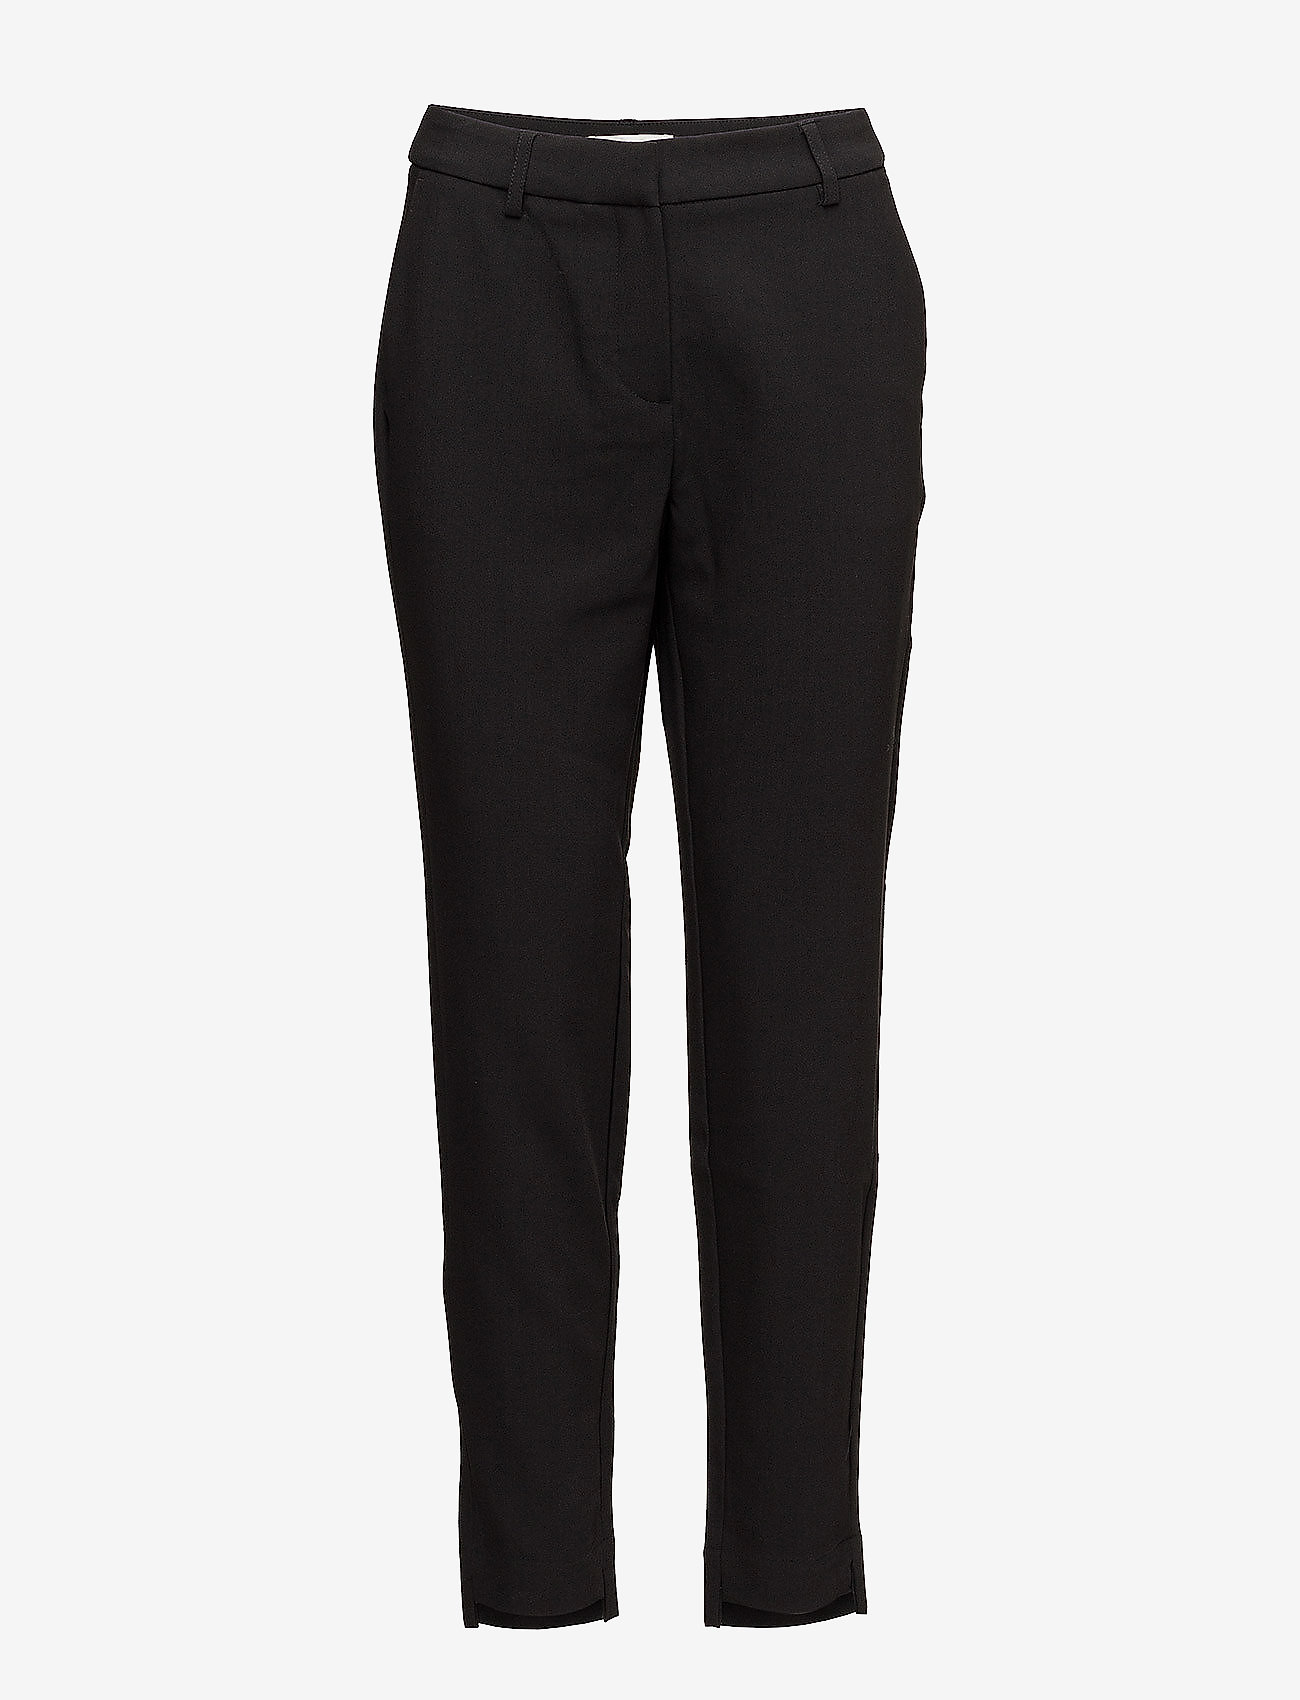 Selected Femme - SLFAMILA MW PANT NOOS - straight leg trousers - black - 0